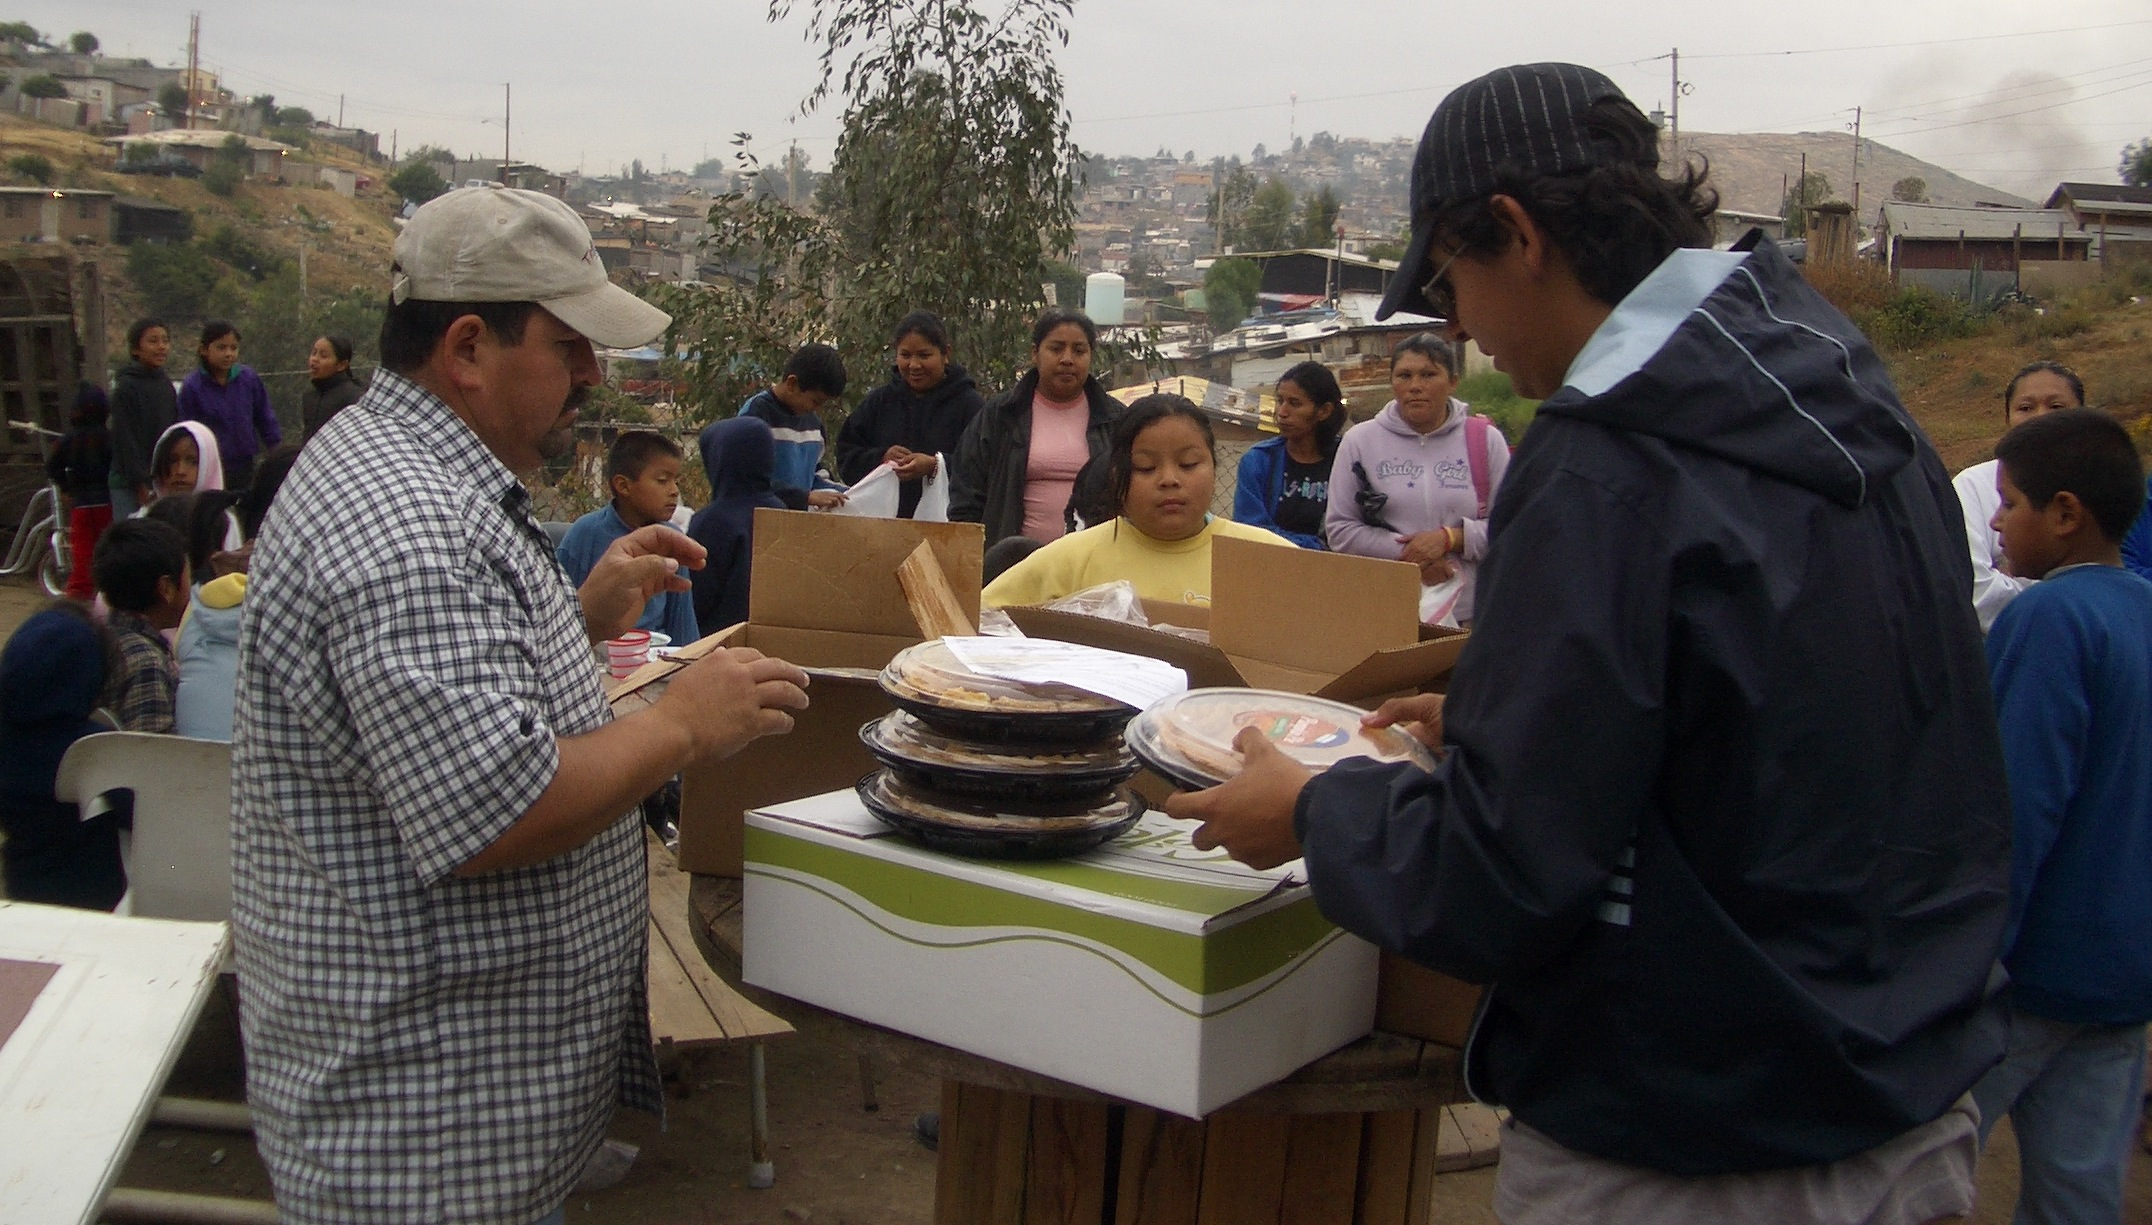 Vicente (left) distributing food to families.